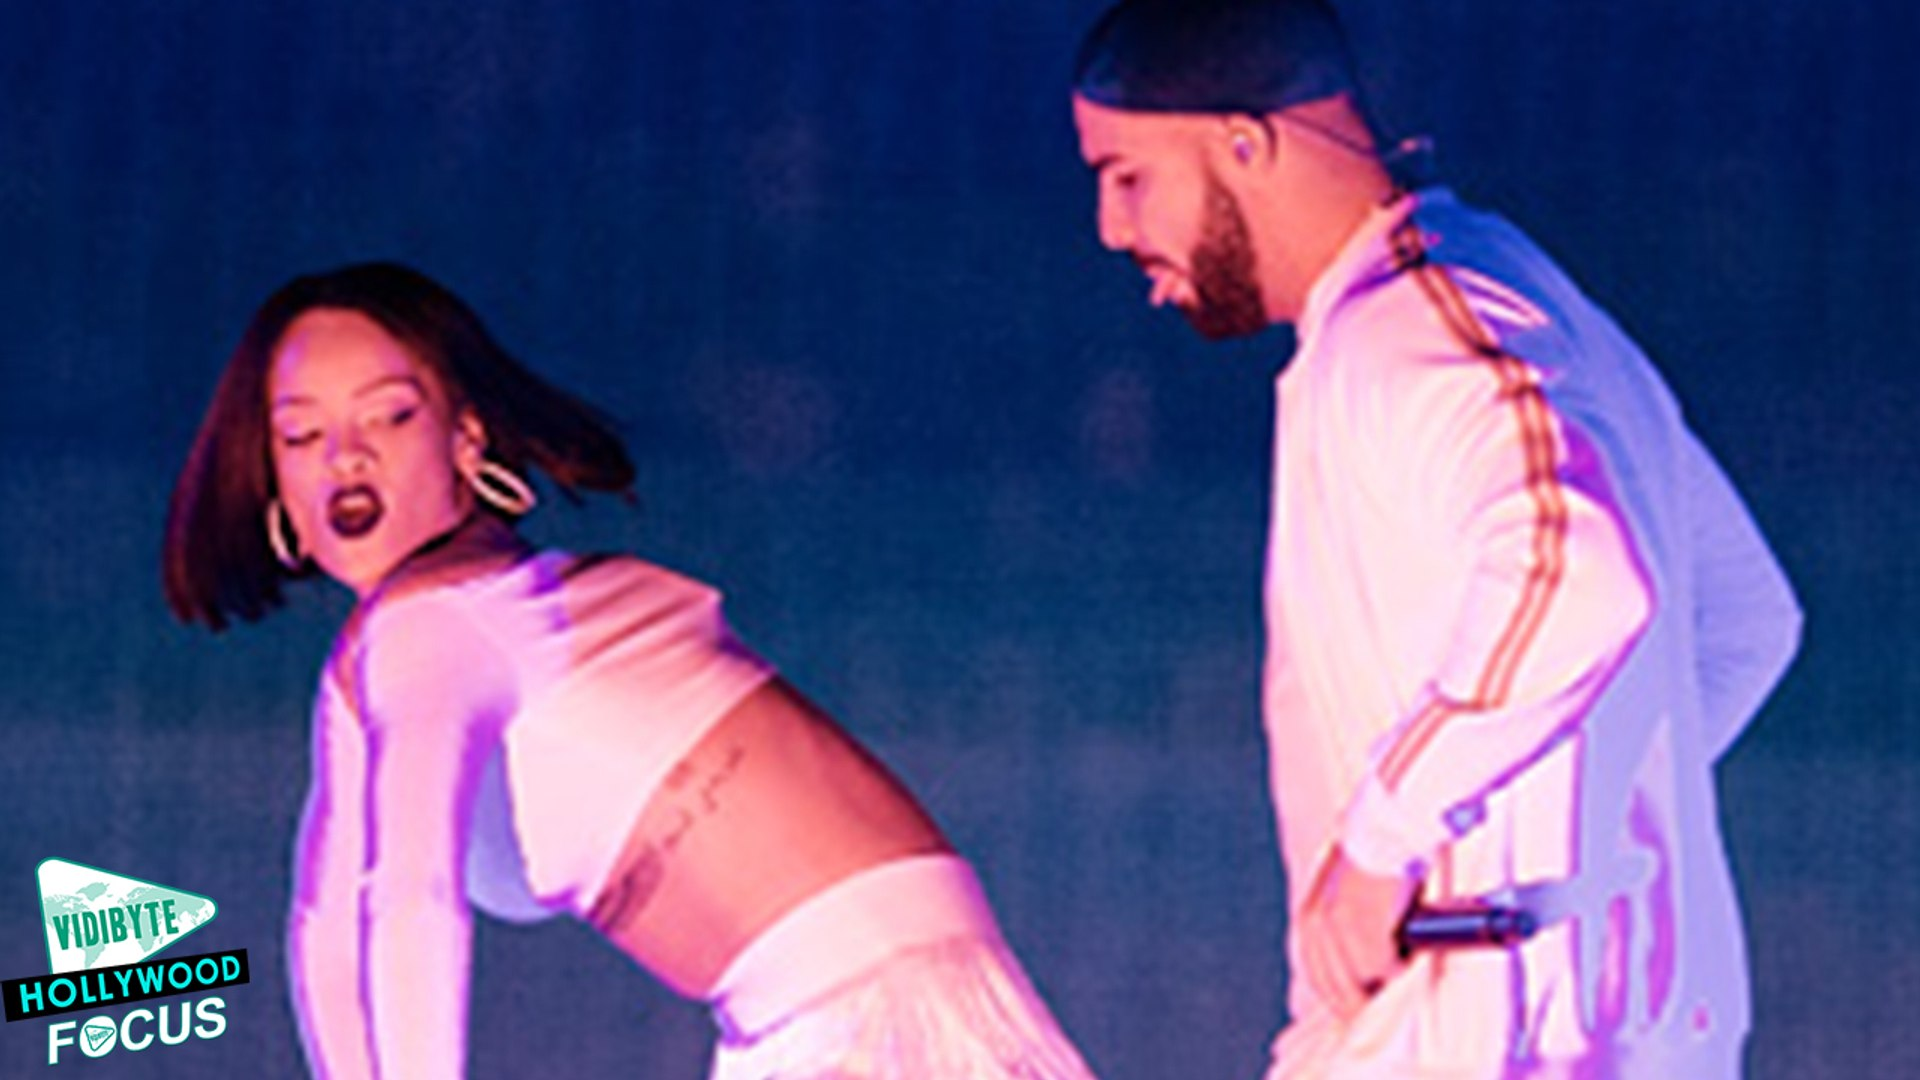 Drake Joins Rihanna During 'Anti' Tour for 'Work' Performance - Watch